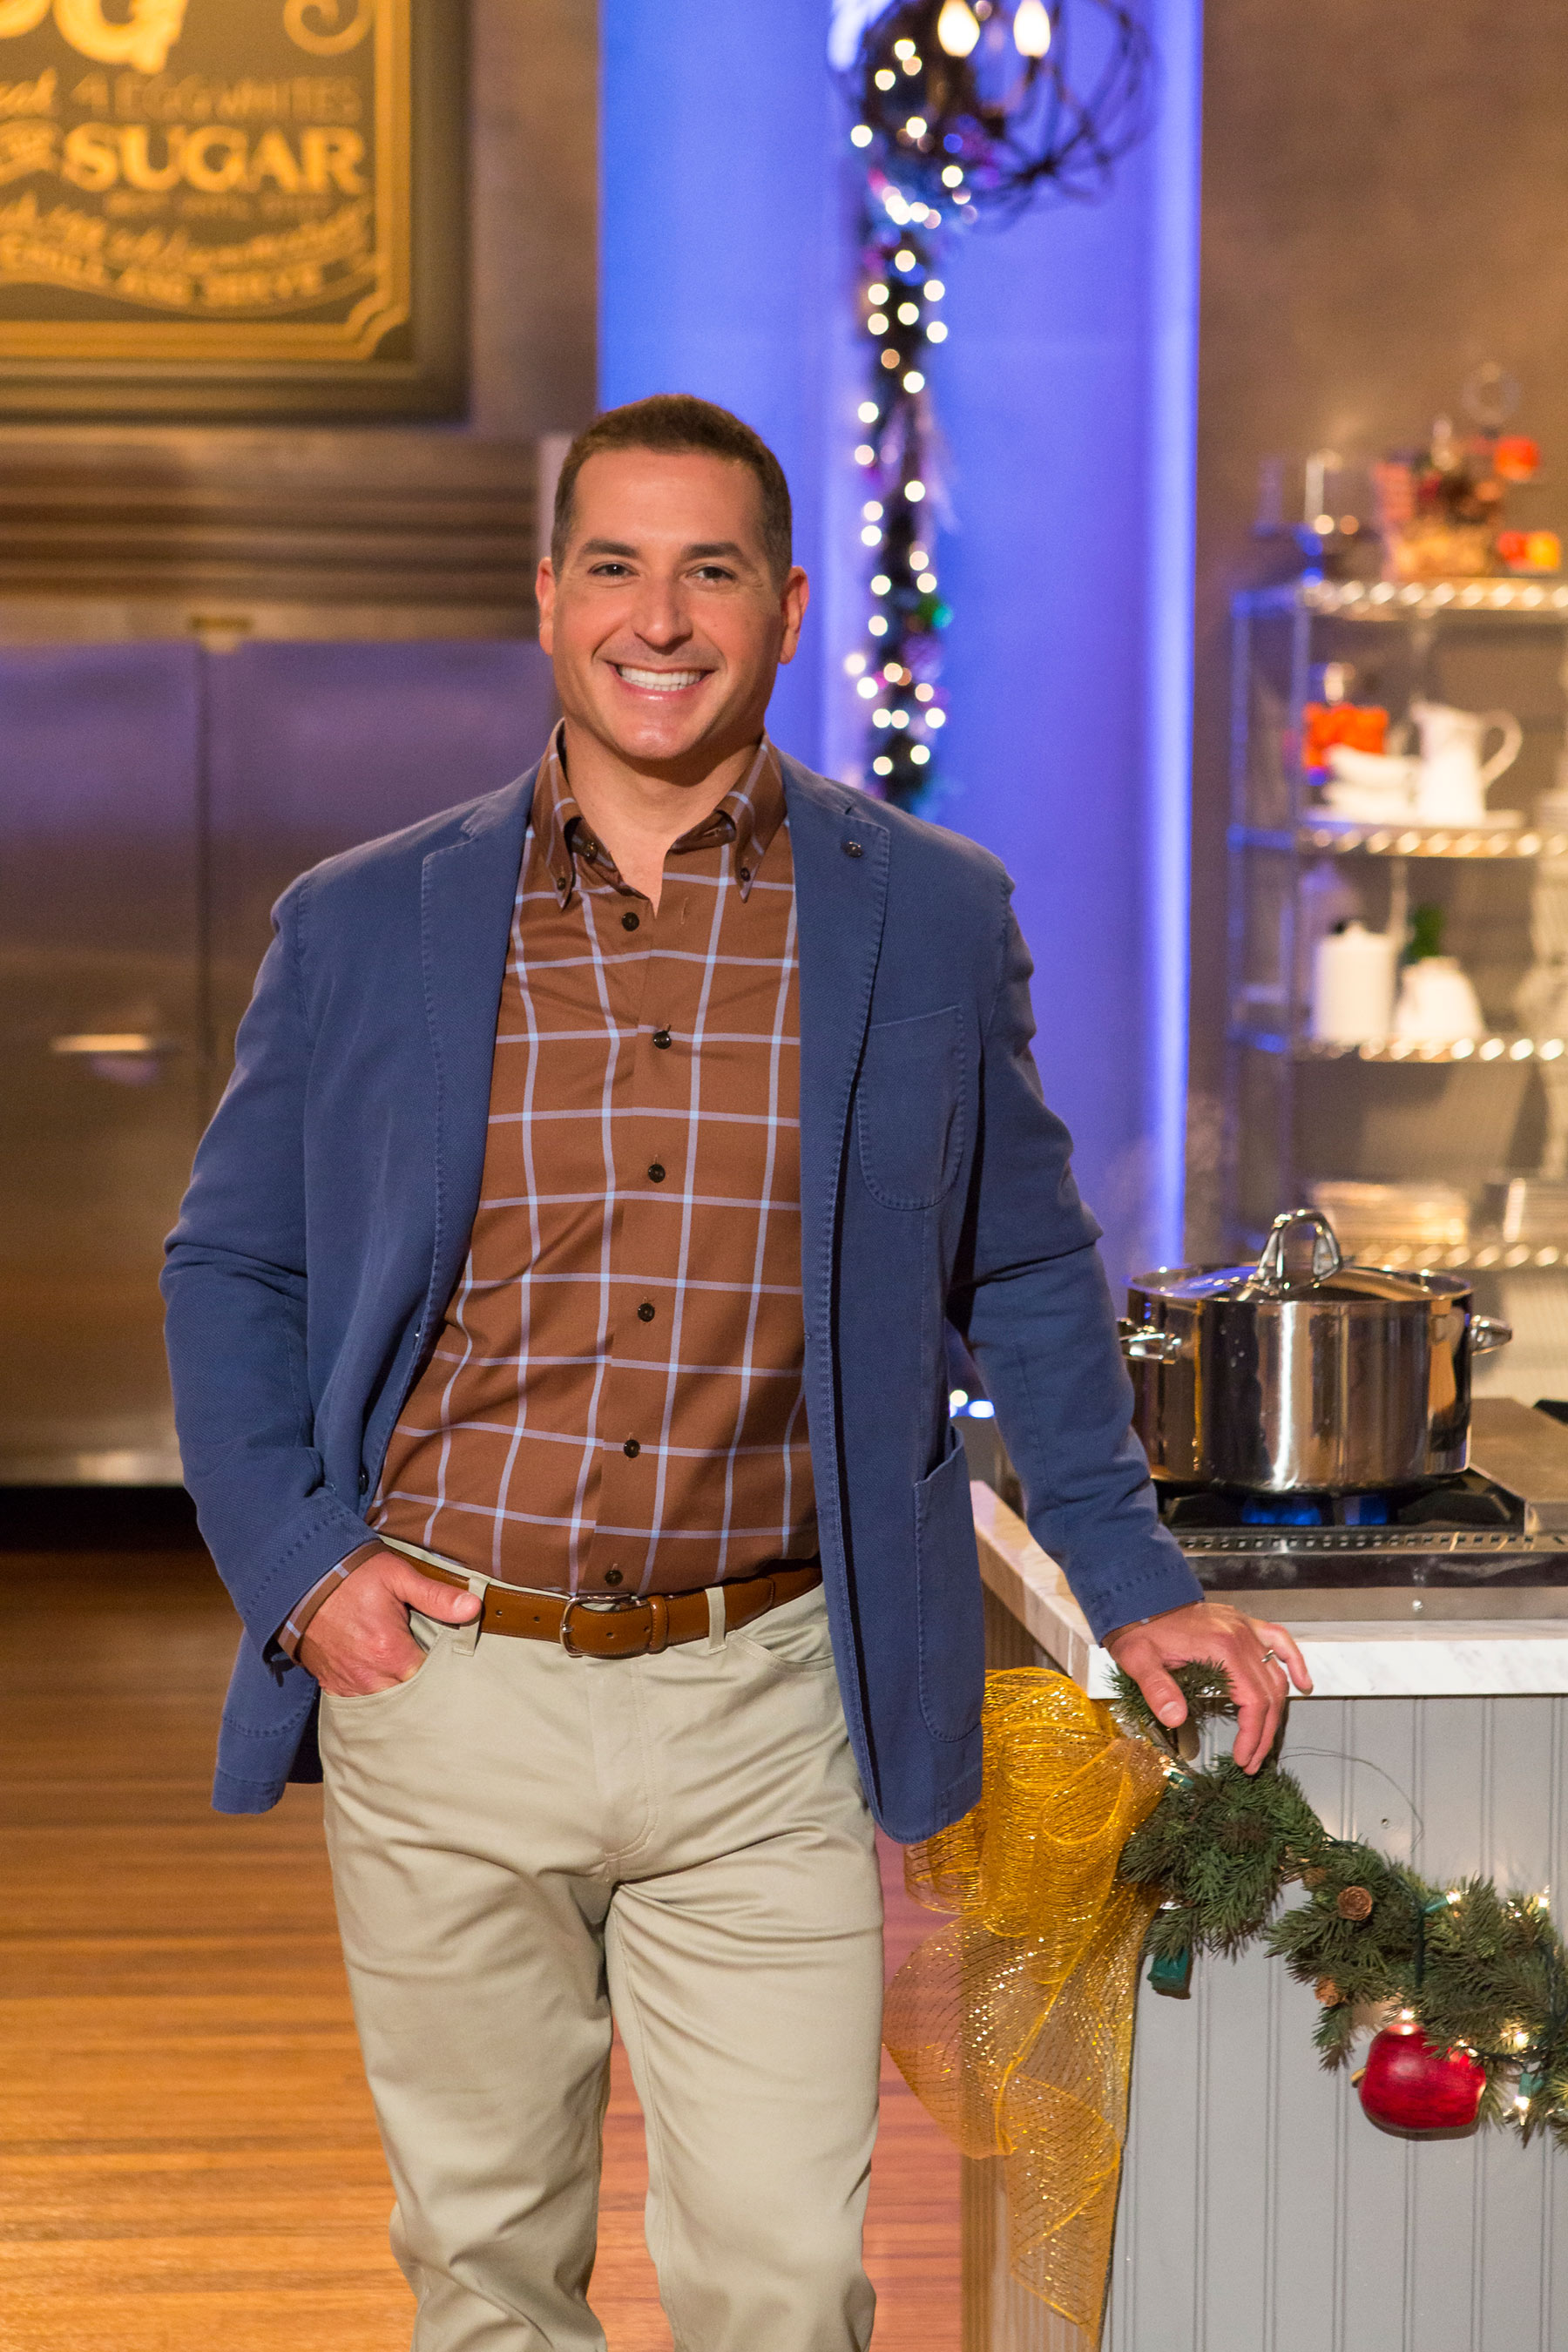 http://www.multivu.com/players/English/7329451-food-network-holiday-baking-championship-premieres-november-9th-2014/gallery/image/65bd7e4a-96d9-4a1e-8a62-b961e40f05da.HR.jpg